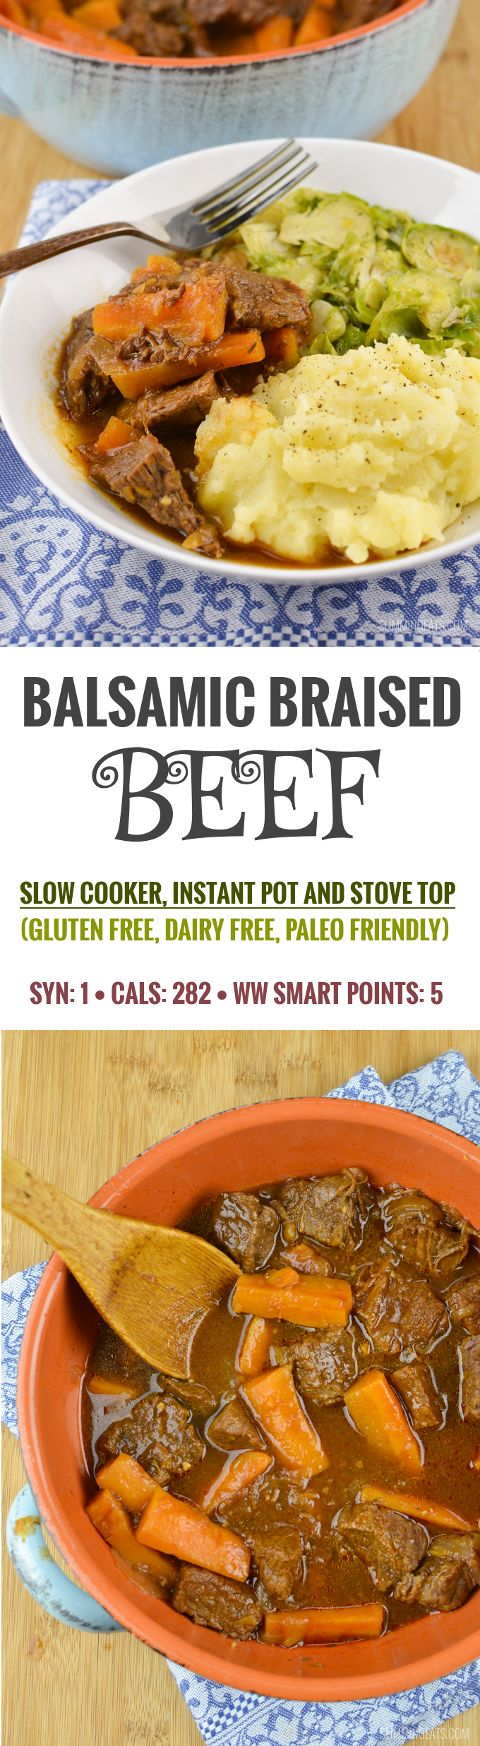 Slimming Eats Balsamic Braised Beef - gluten free, dairy free, paleo, slow cooker, instant pot, Weight Watchers and Slimming World friendly